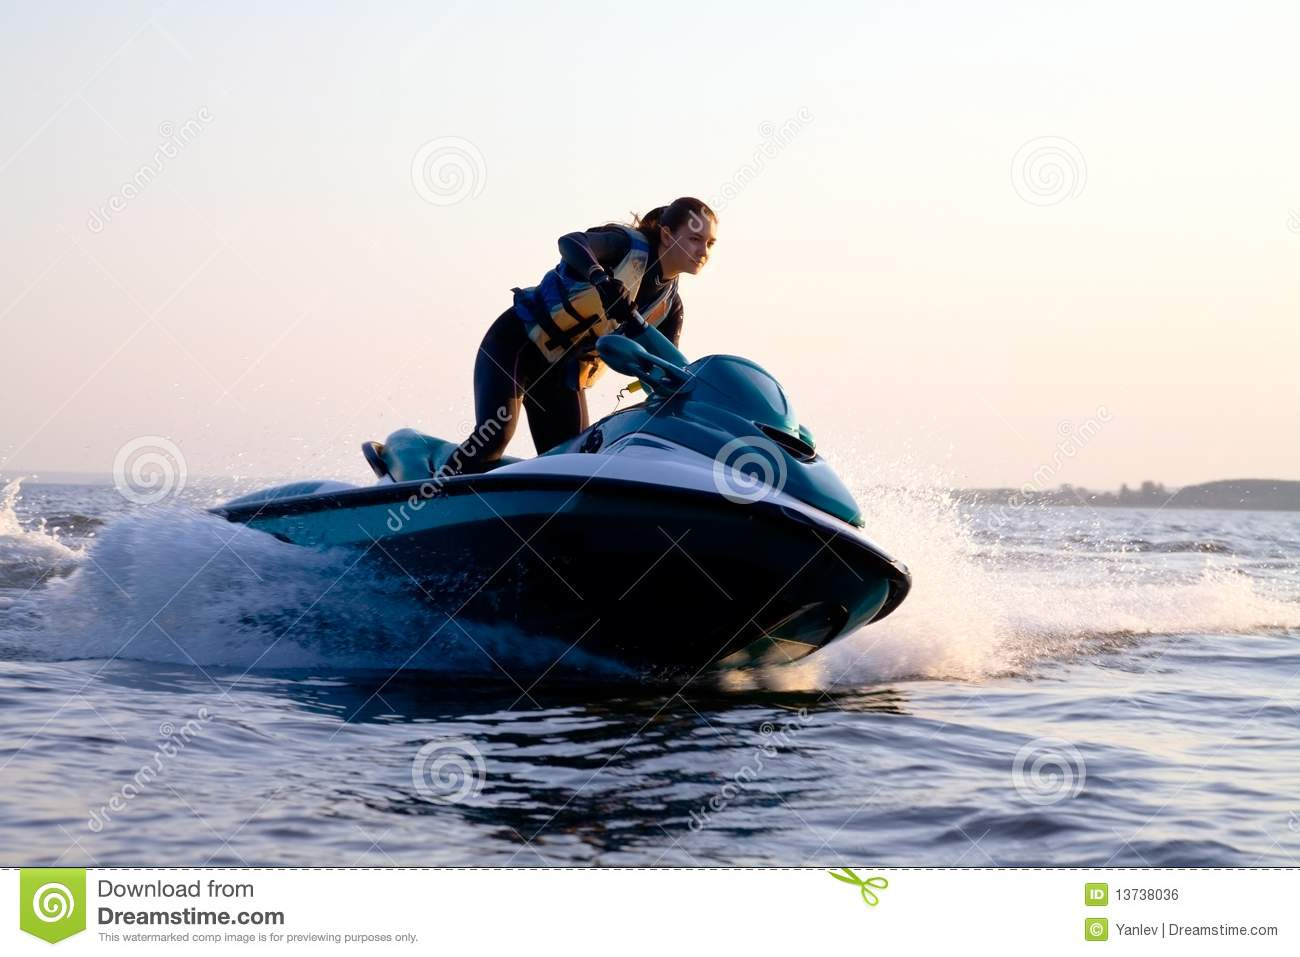 7 PSD Girls On Jet Ski Images